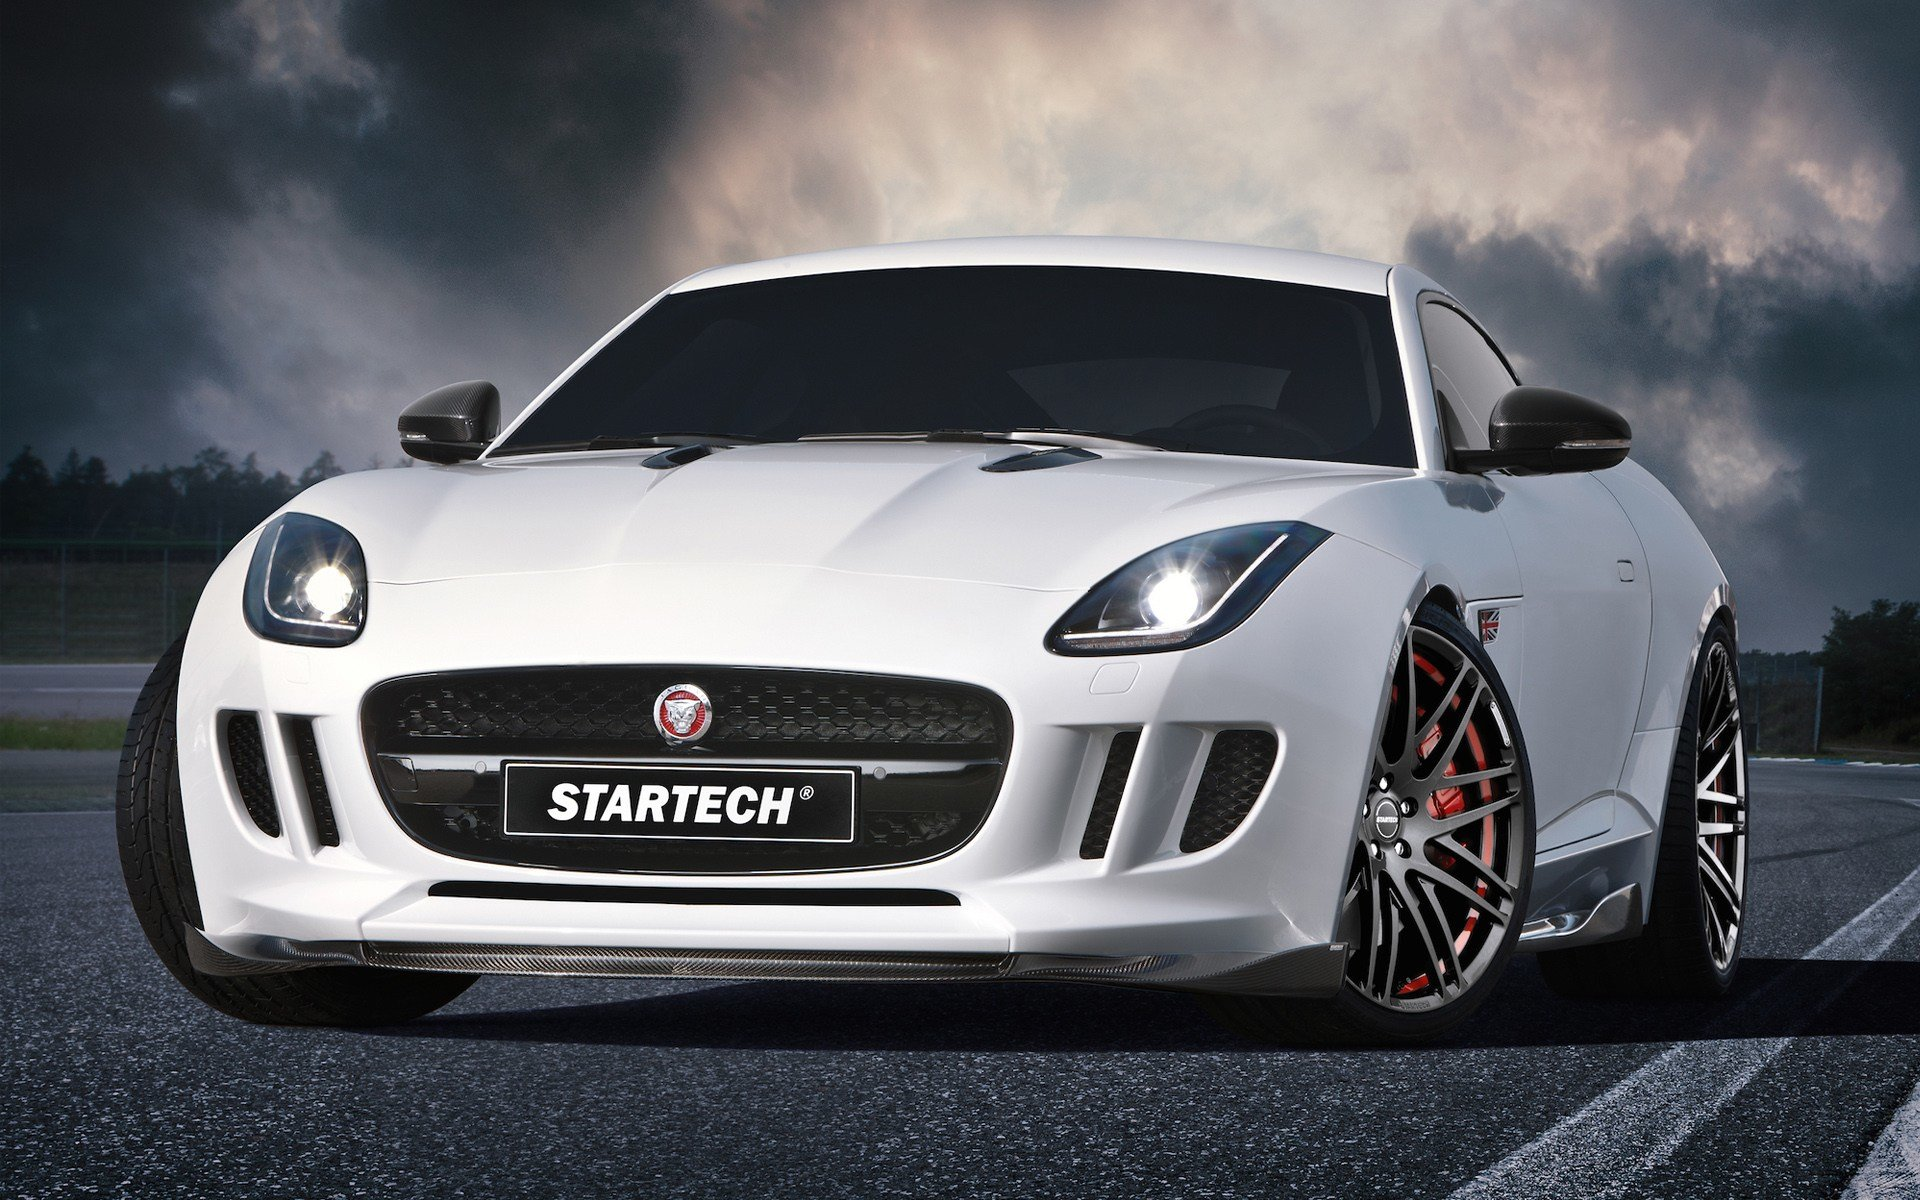 New 2015 Startech Jaguar F Type Coupe Wallpaper Hd Car On This Month